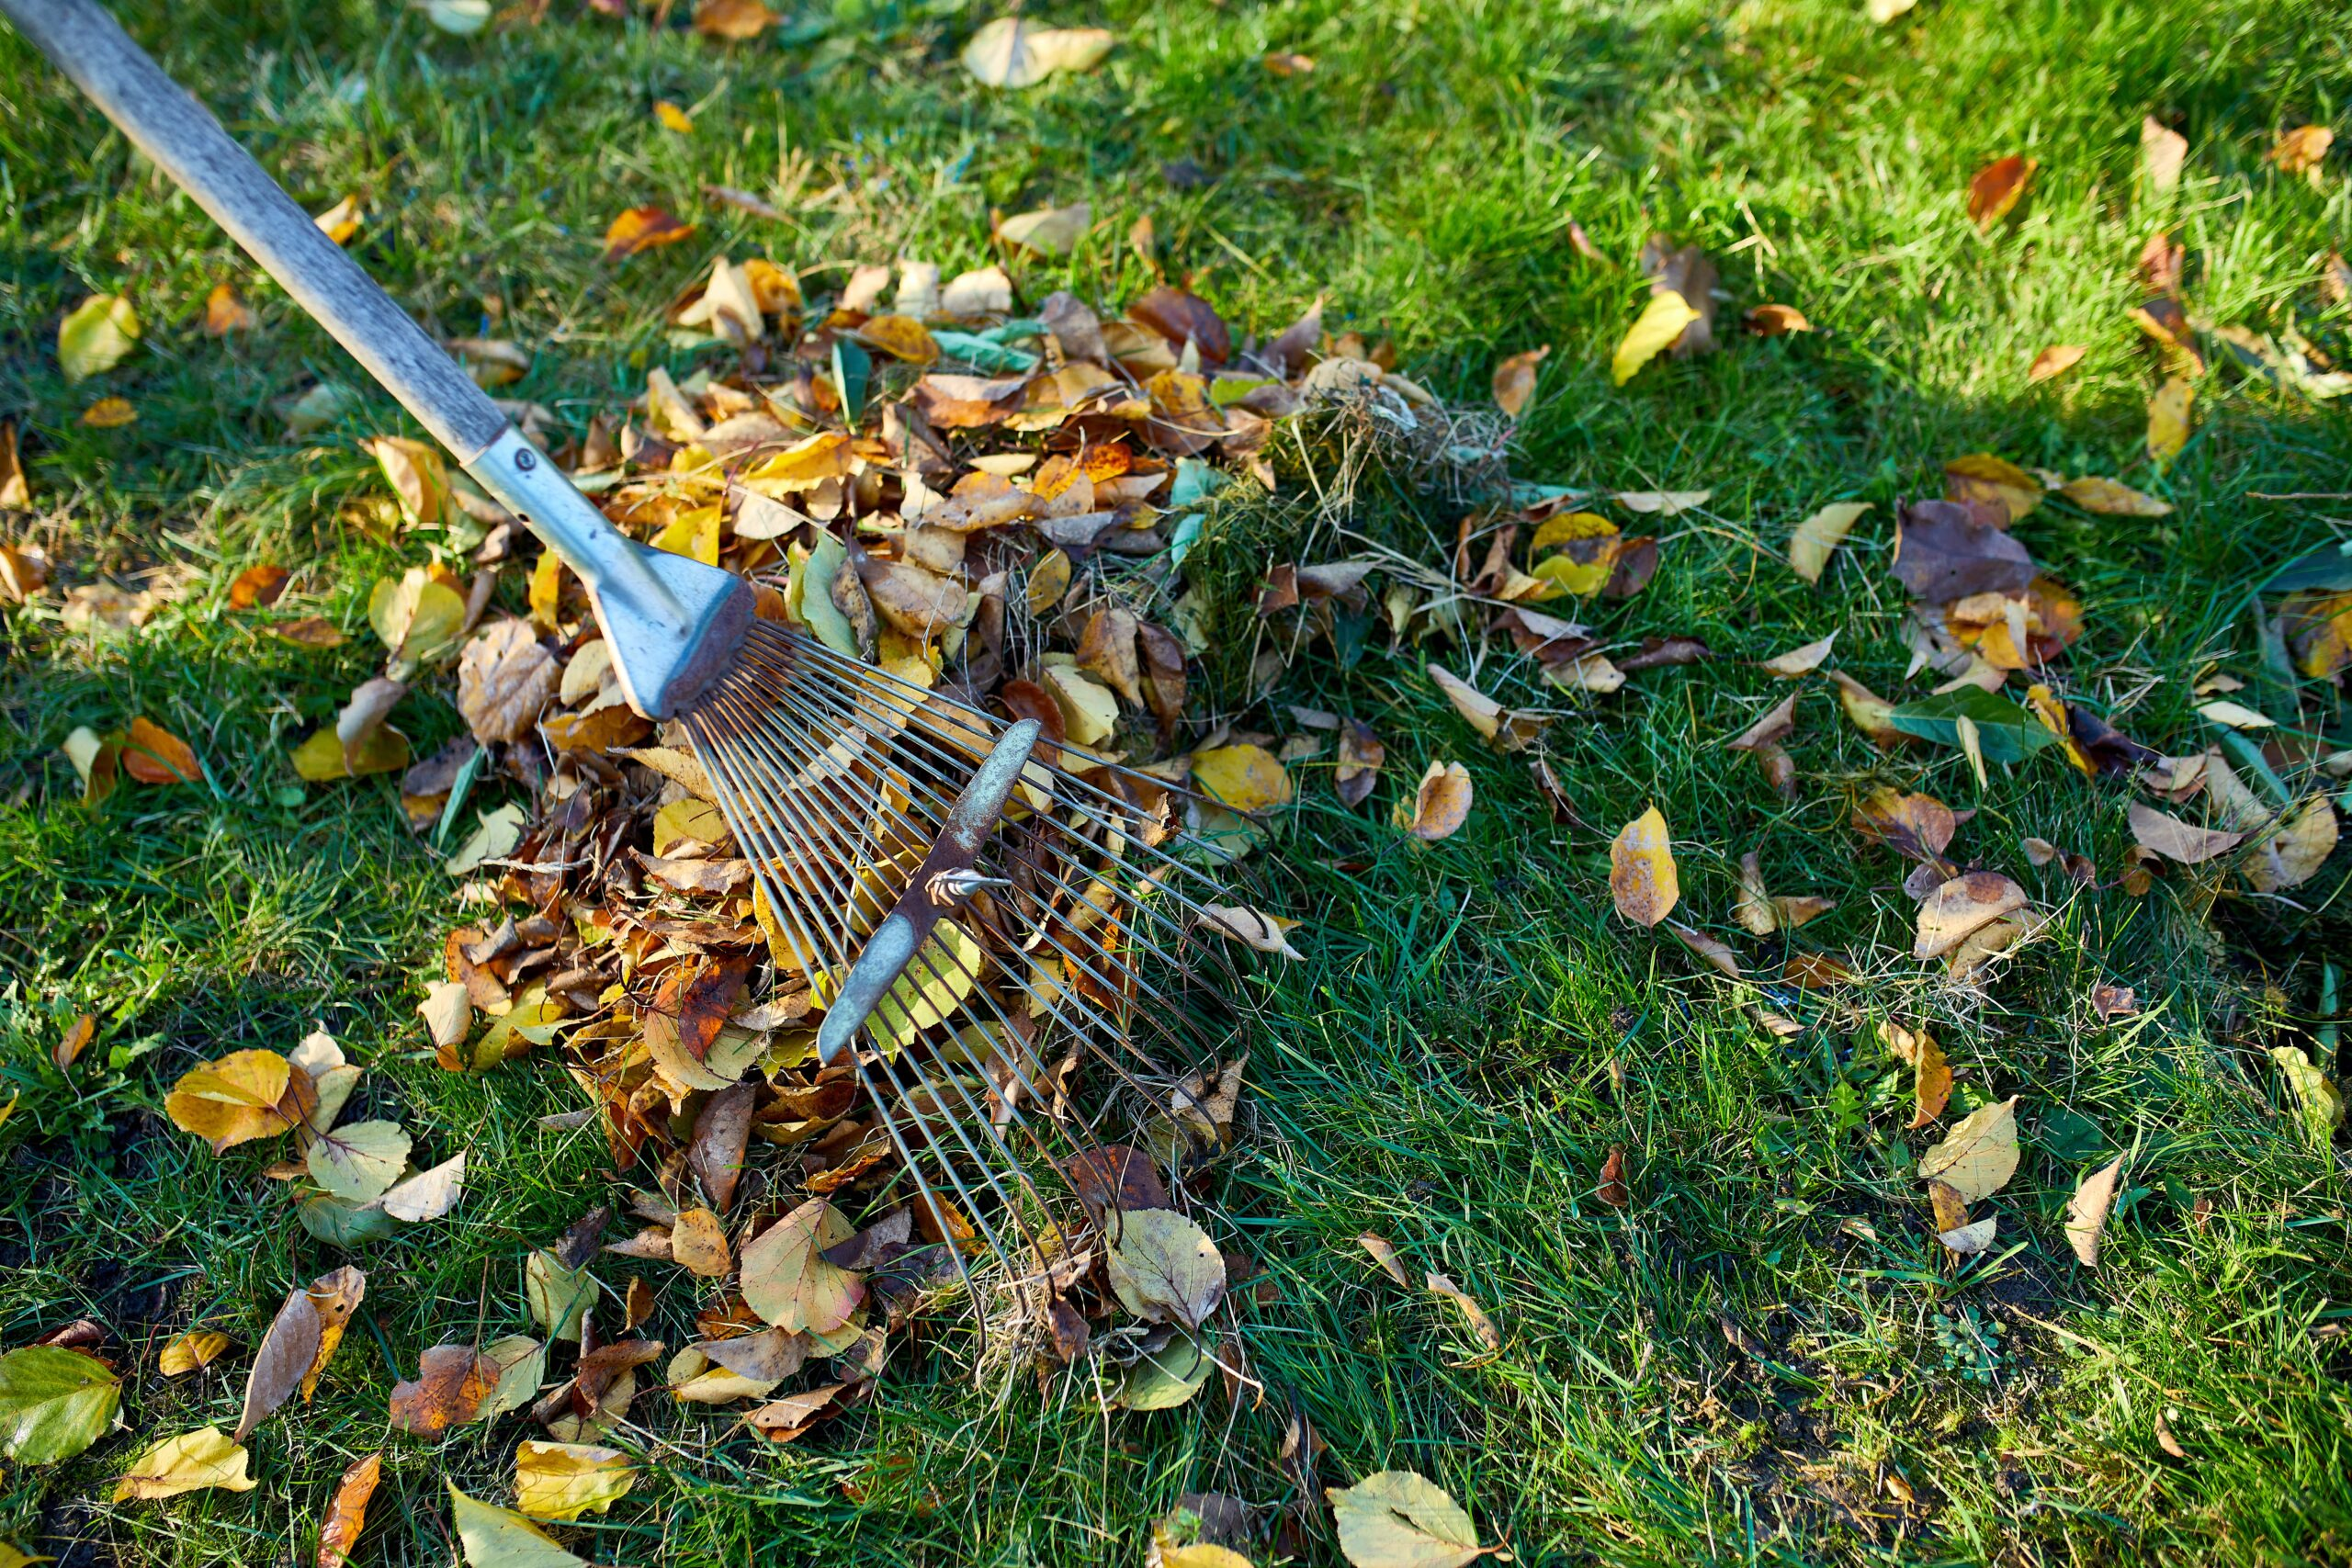 Spring and Fall Cleanup